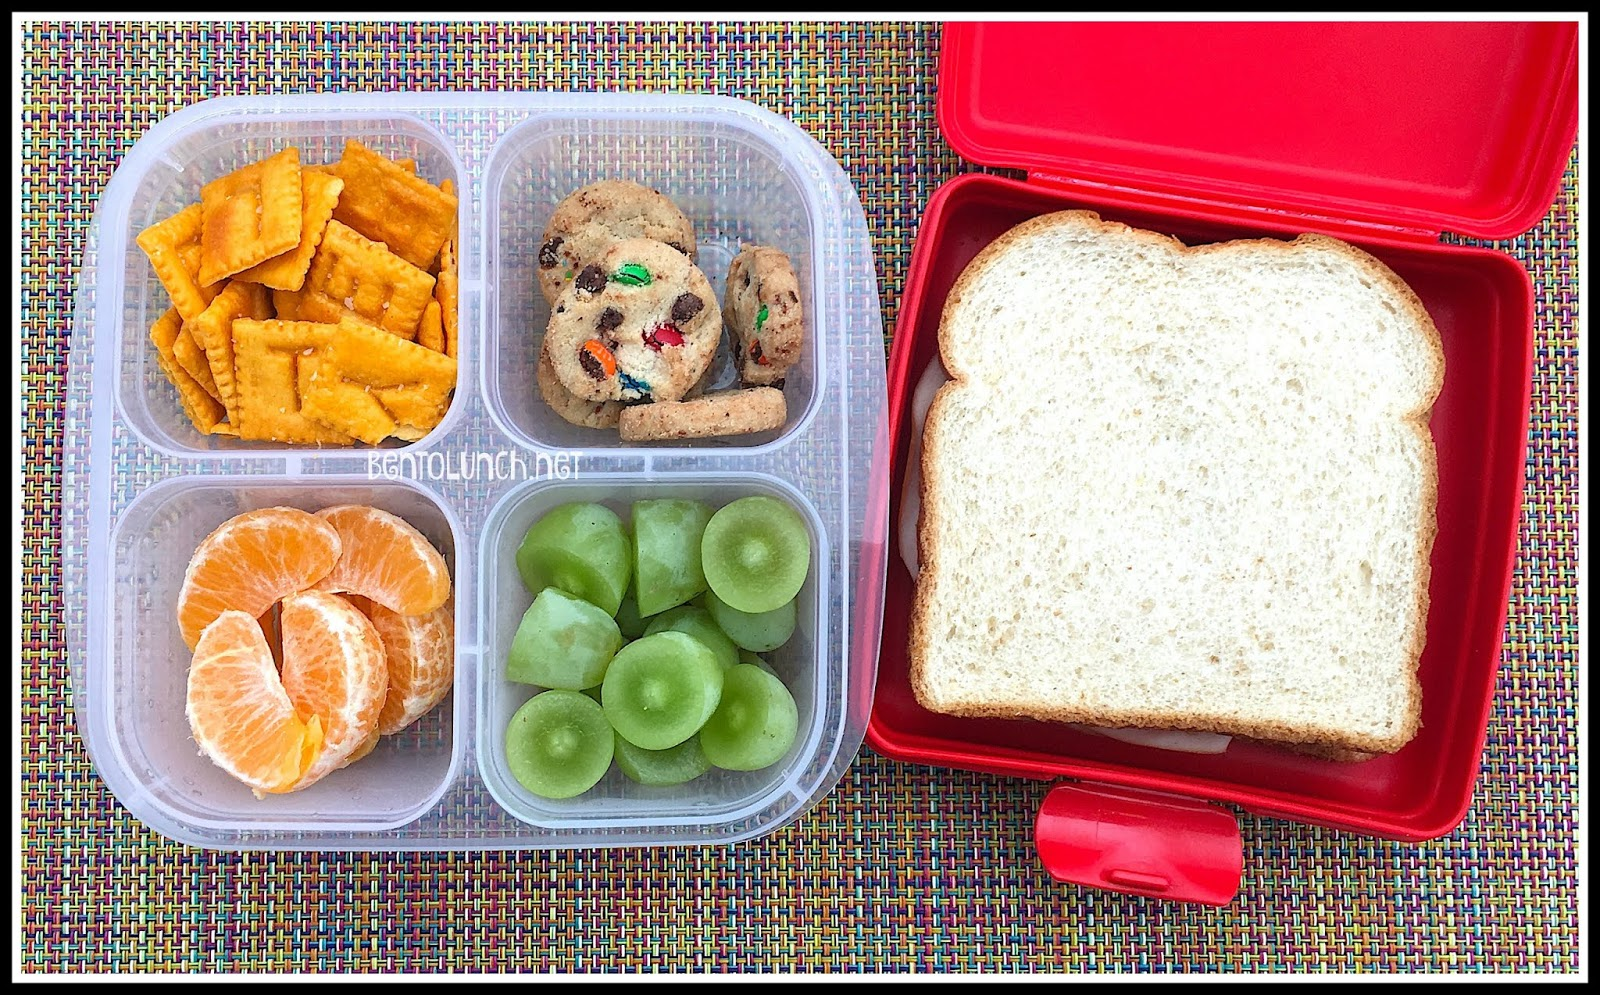 Lunch In A Box Bentolunch What S For Lunch At Our House Double Box Bento Lunch